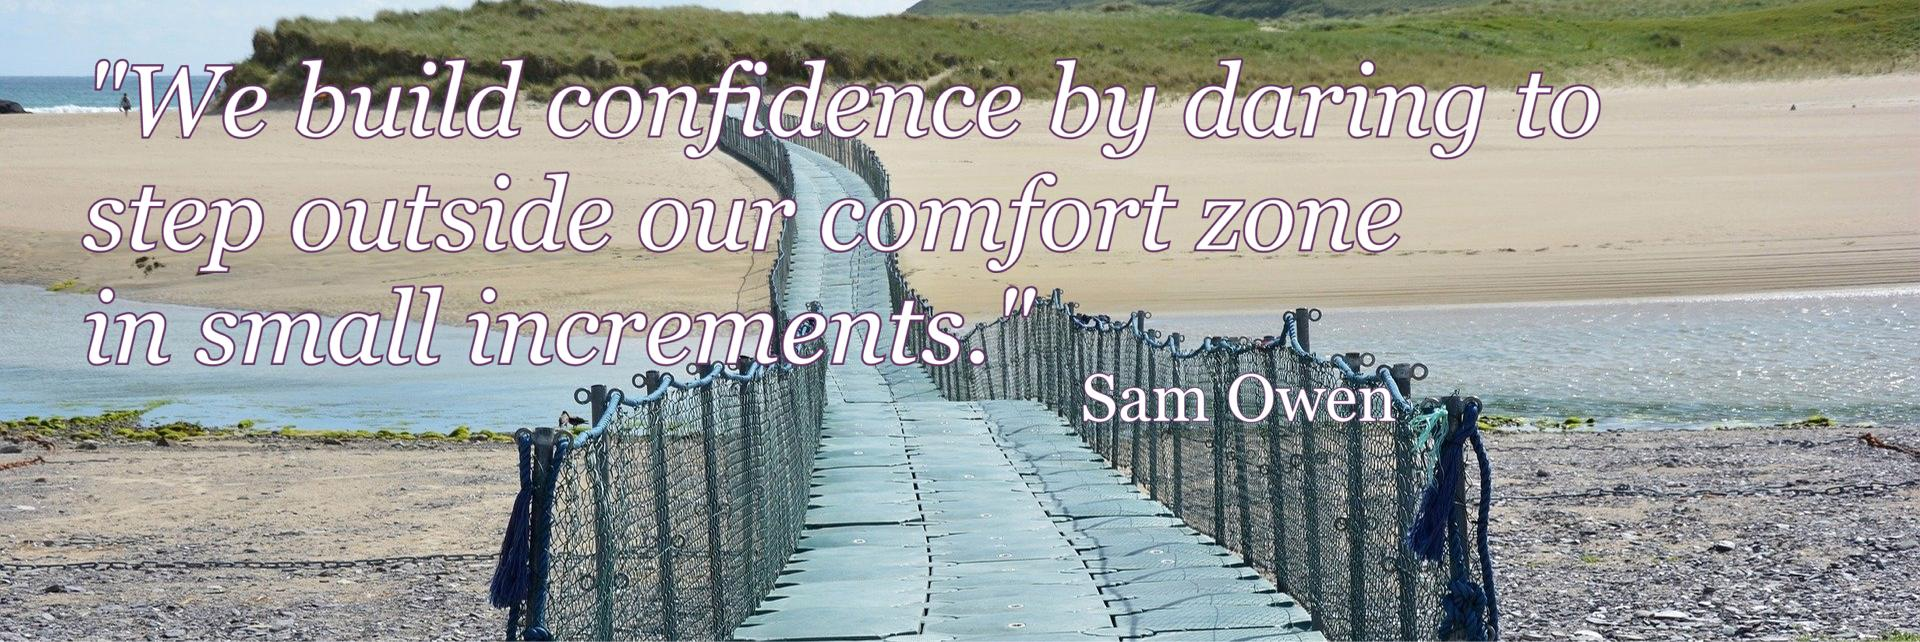 """We build confidence by daring to  step outside our comfort zone  in small increments.""  - Sam Owen. DML Counselling & Psychotherapy, County Wexford, Ireland"